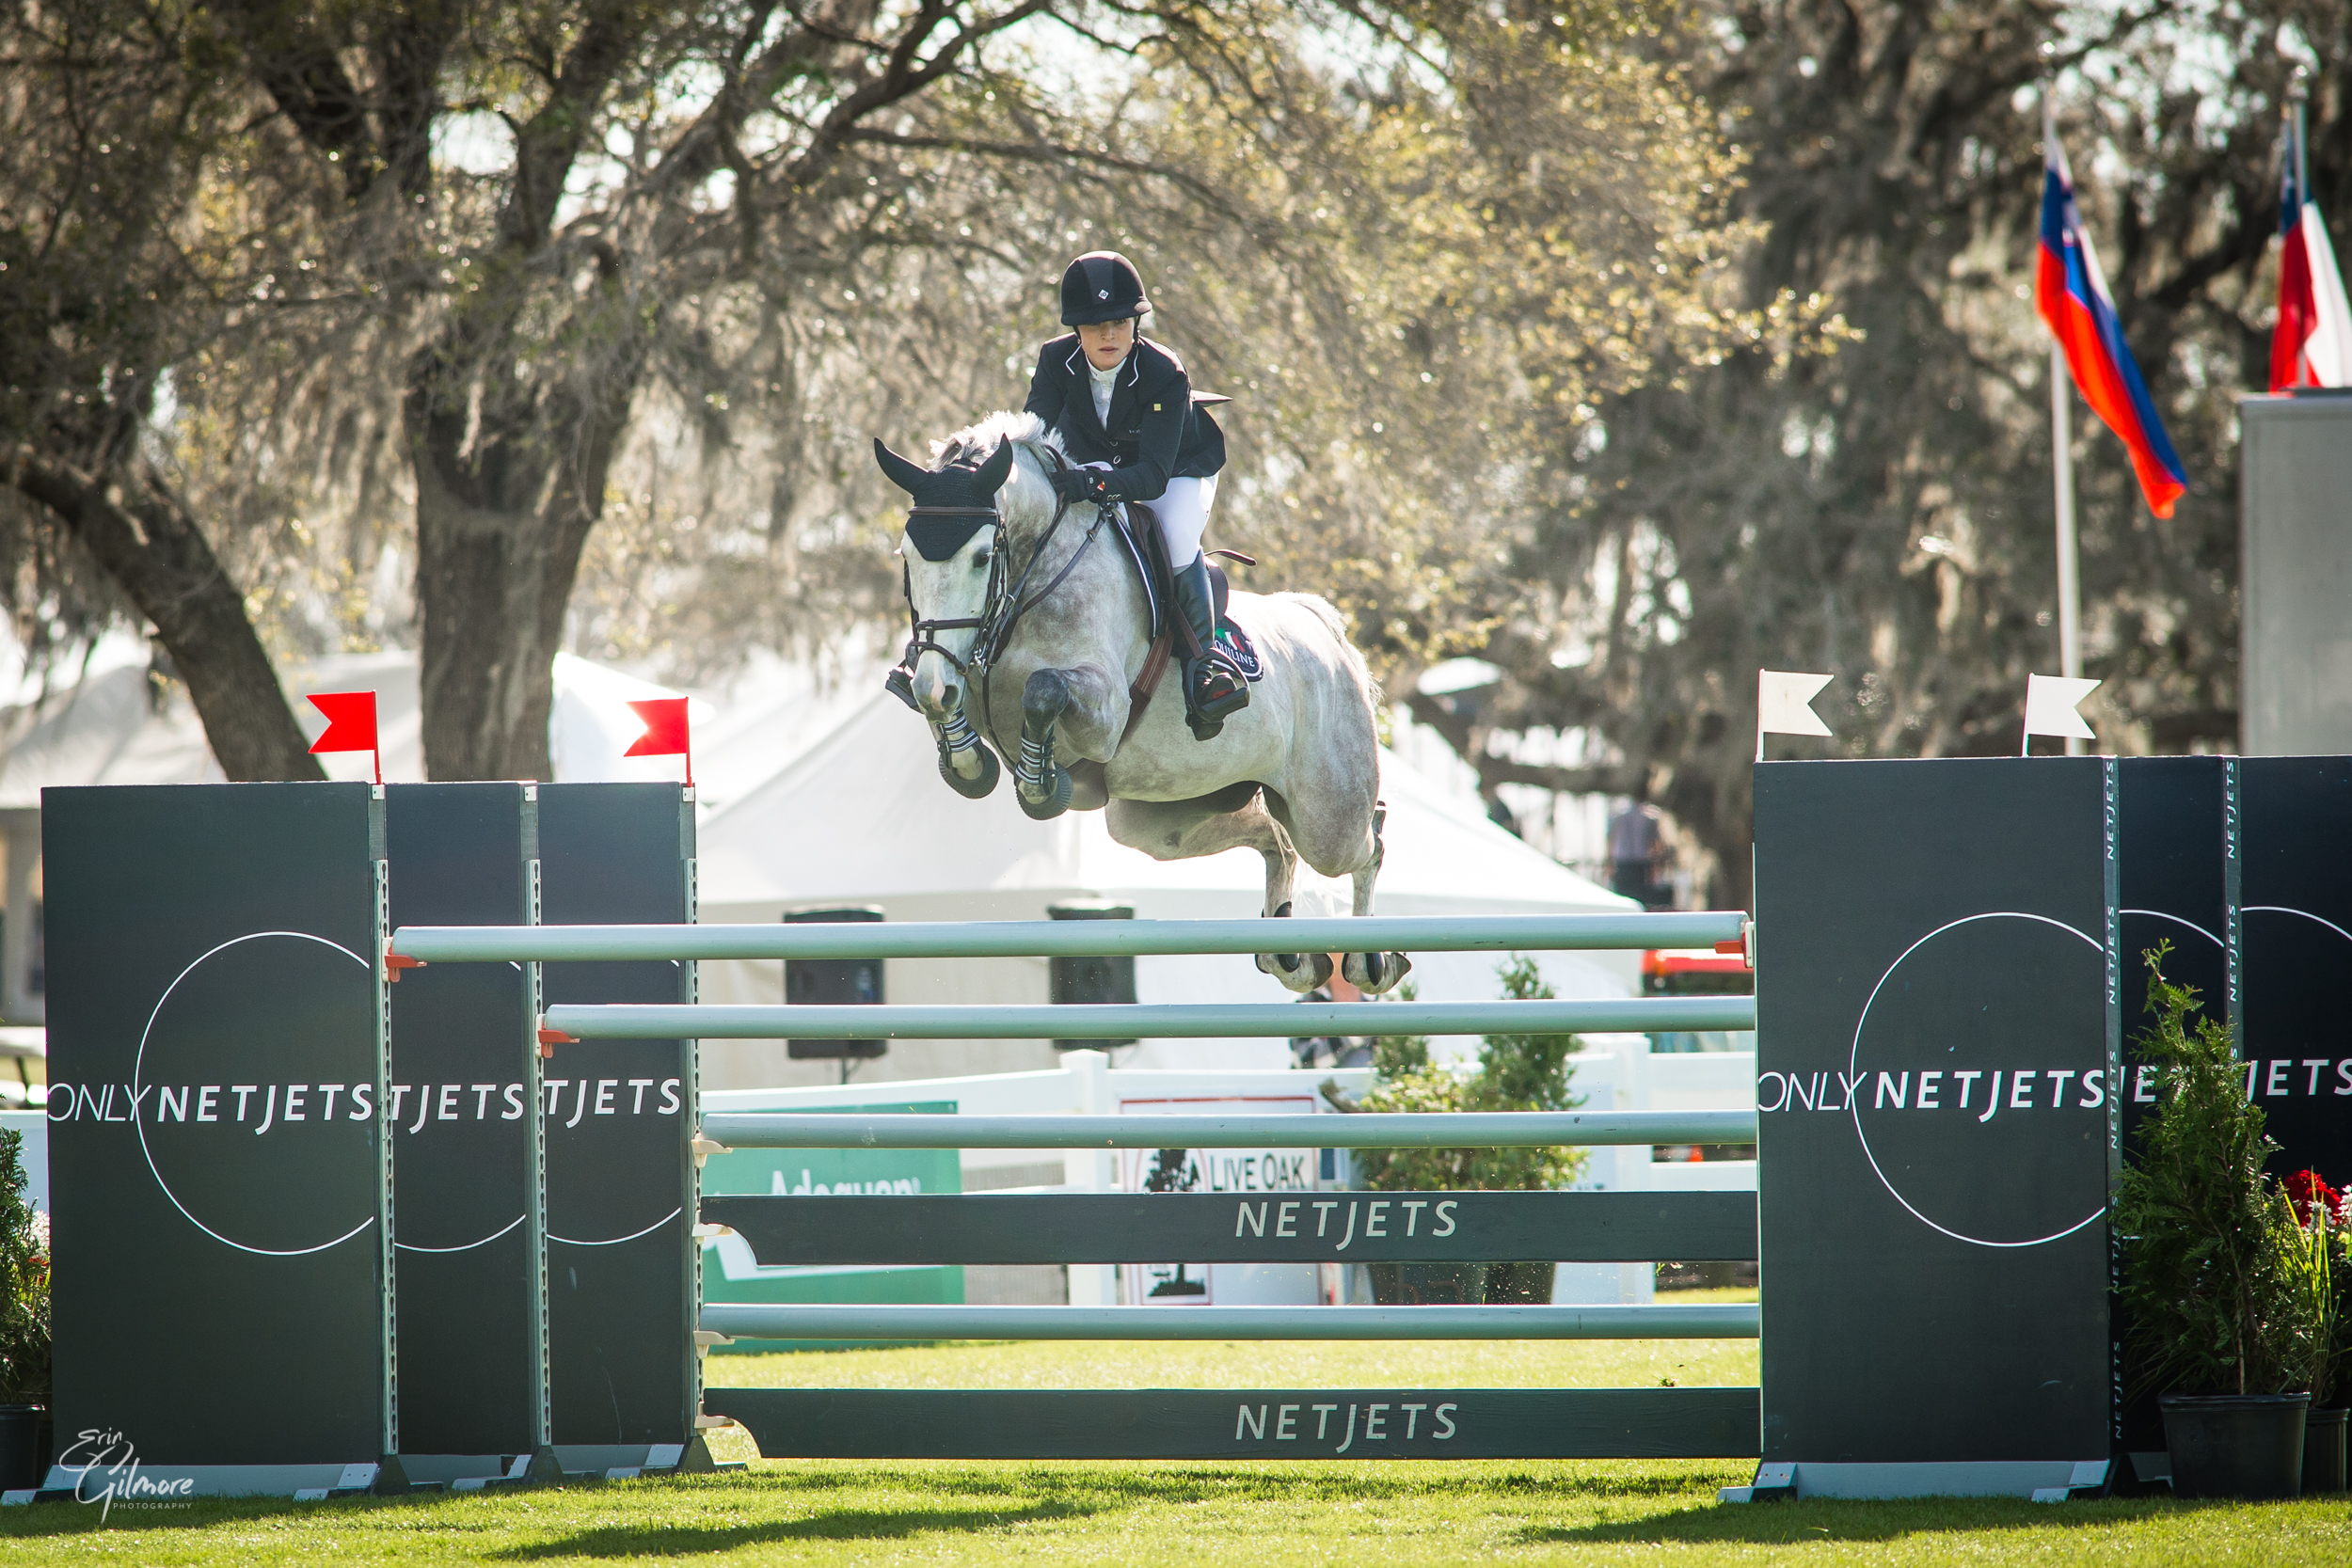 CHLOE REID WINS THE $36,600 LIVE OAK INTERNATIONAL CSI3* LONGINES WORLD RANKING TABLE A SPEED CLASS